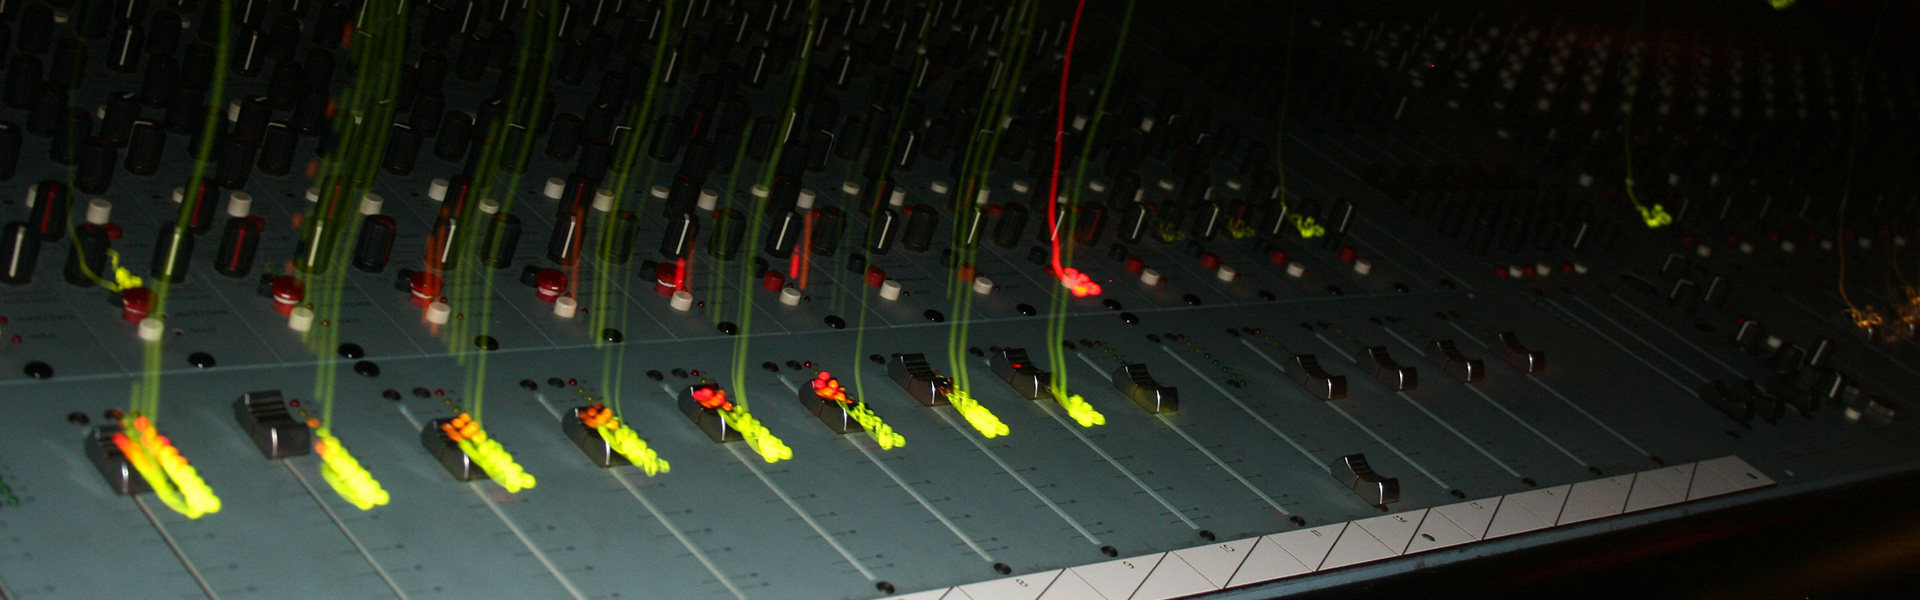 https://mixing.studio11chicago.com/wp-content/uploads/2014/02/STUDIO-11-CONSOLE-2.jpg